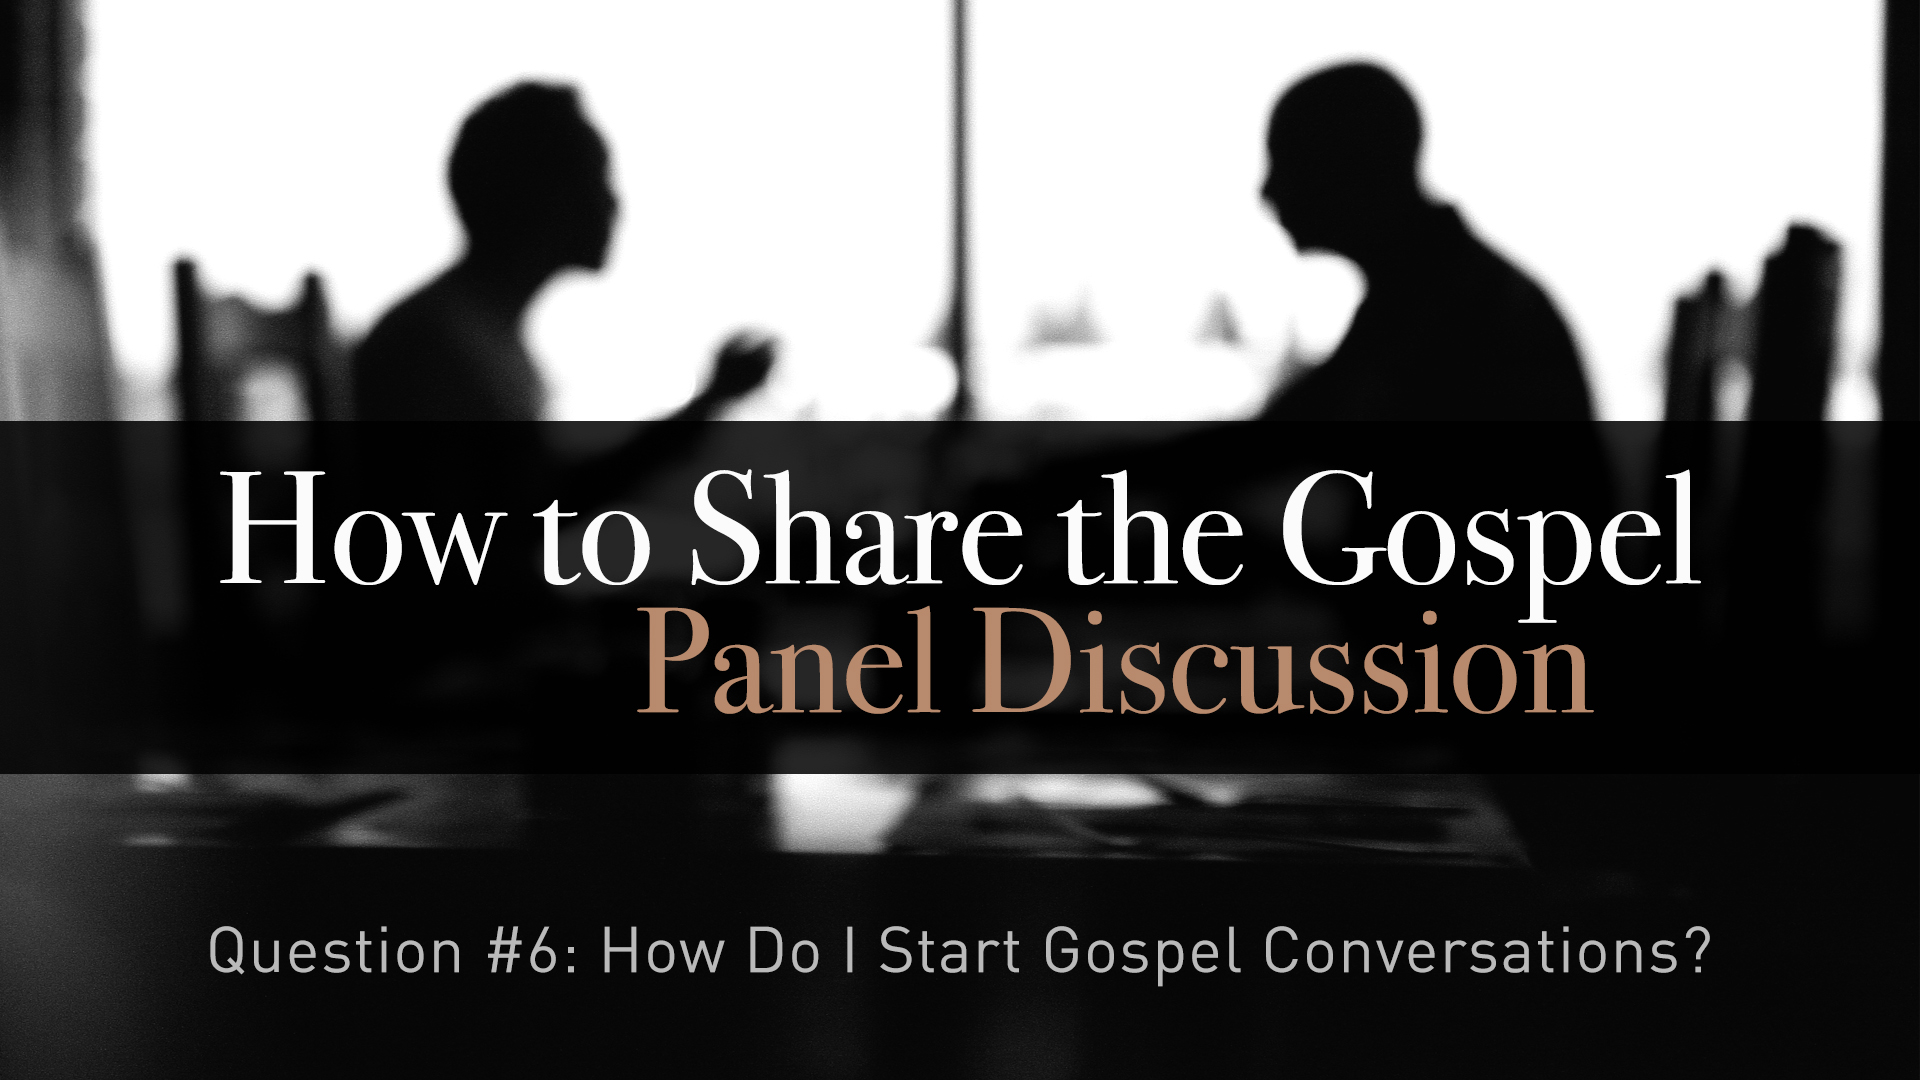 How Do I Start Gospel Conversations?